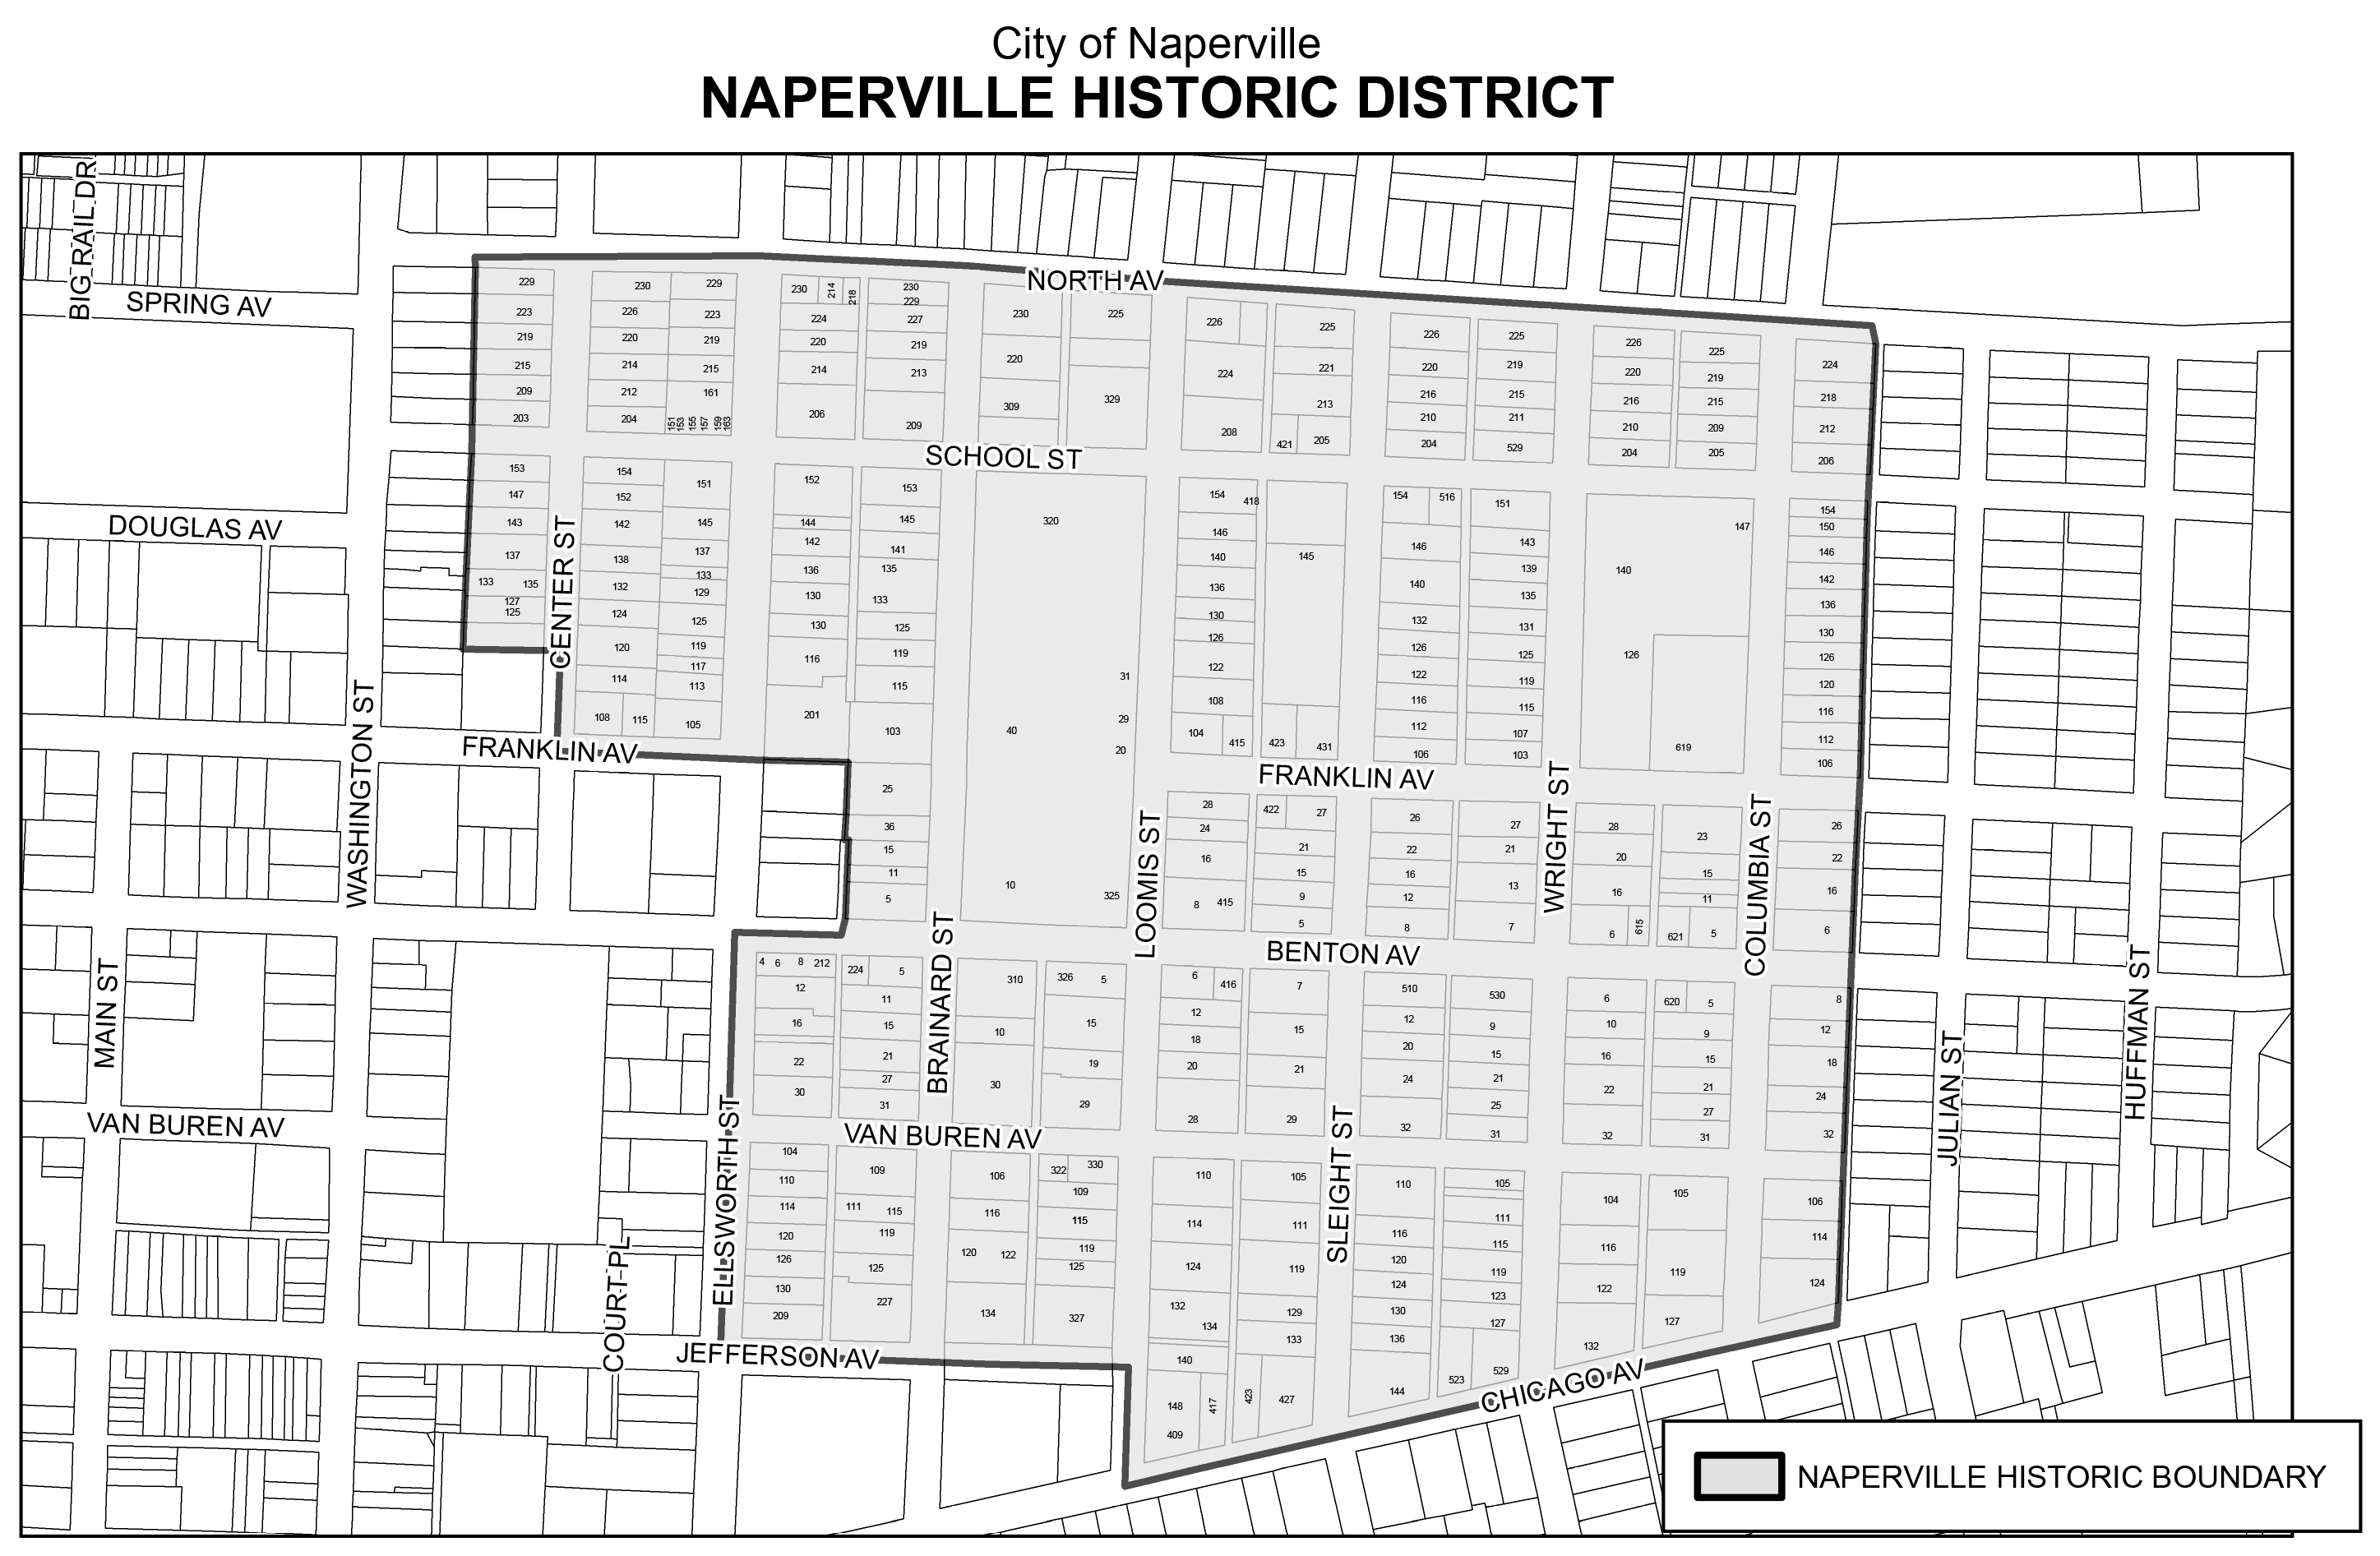 Historic District The City of Naperville